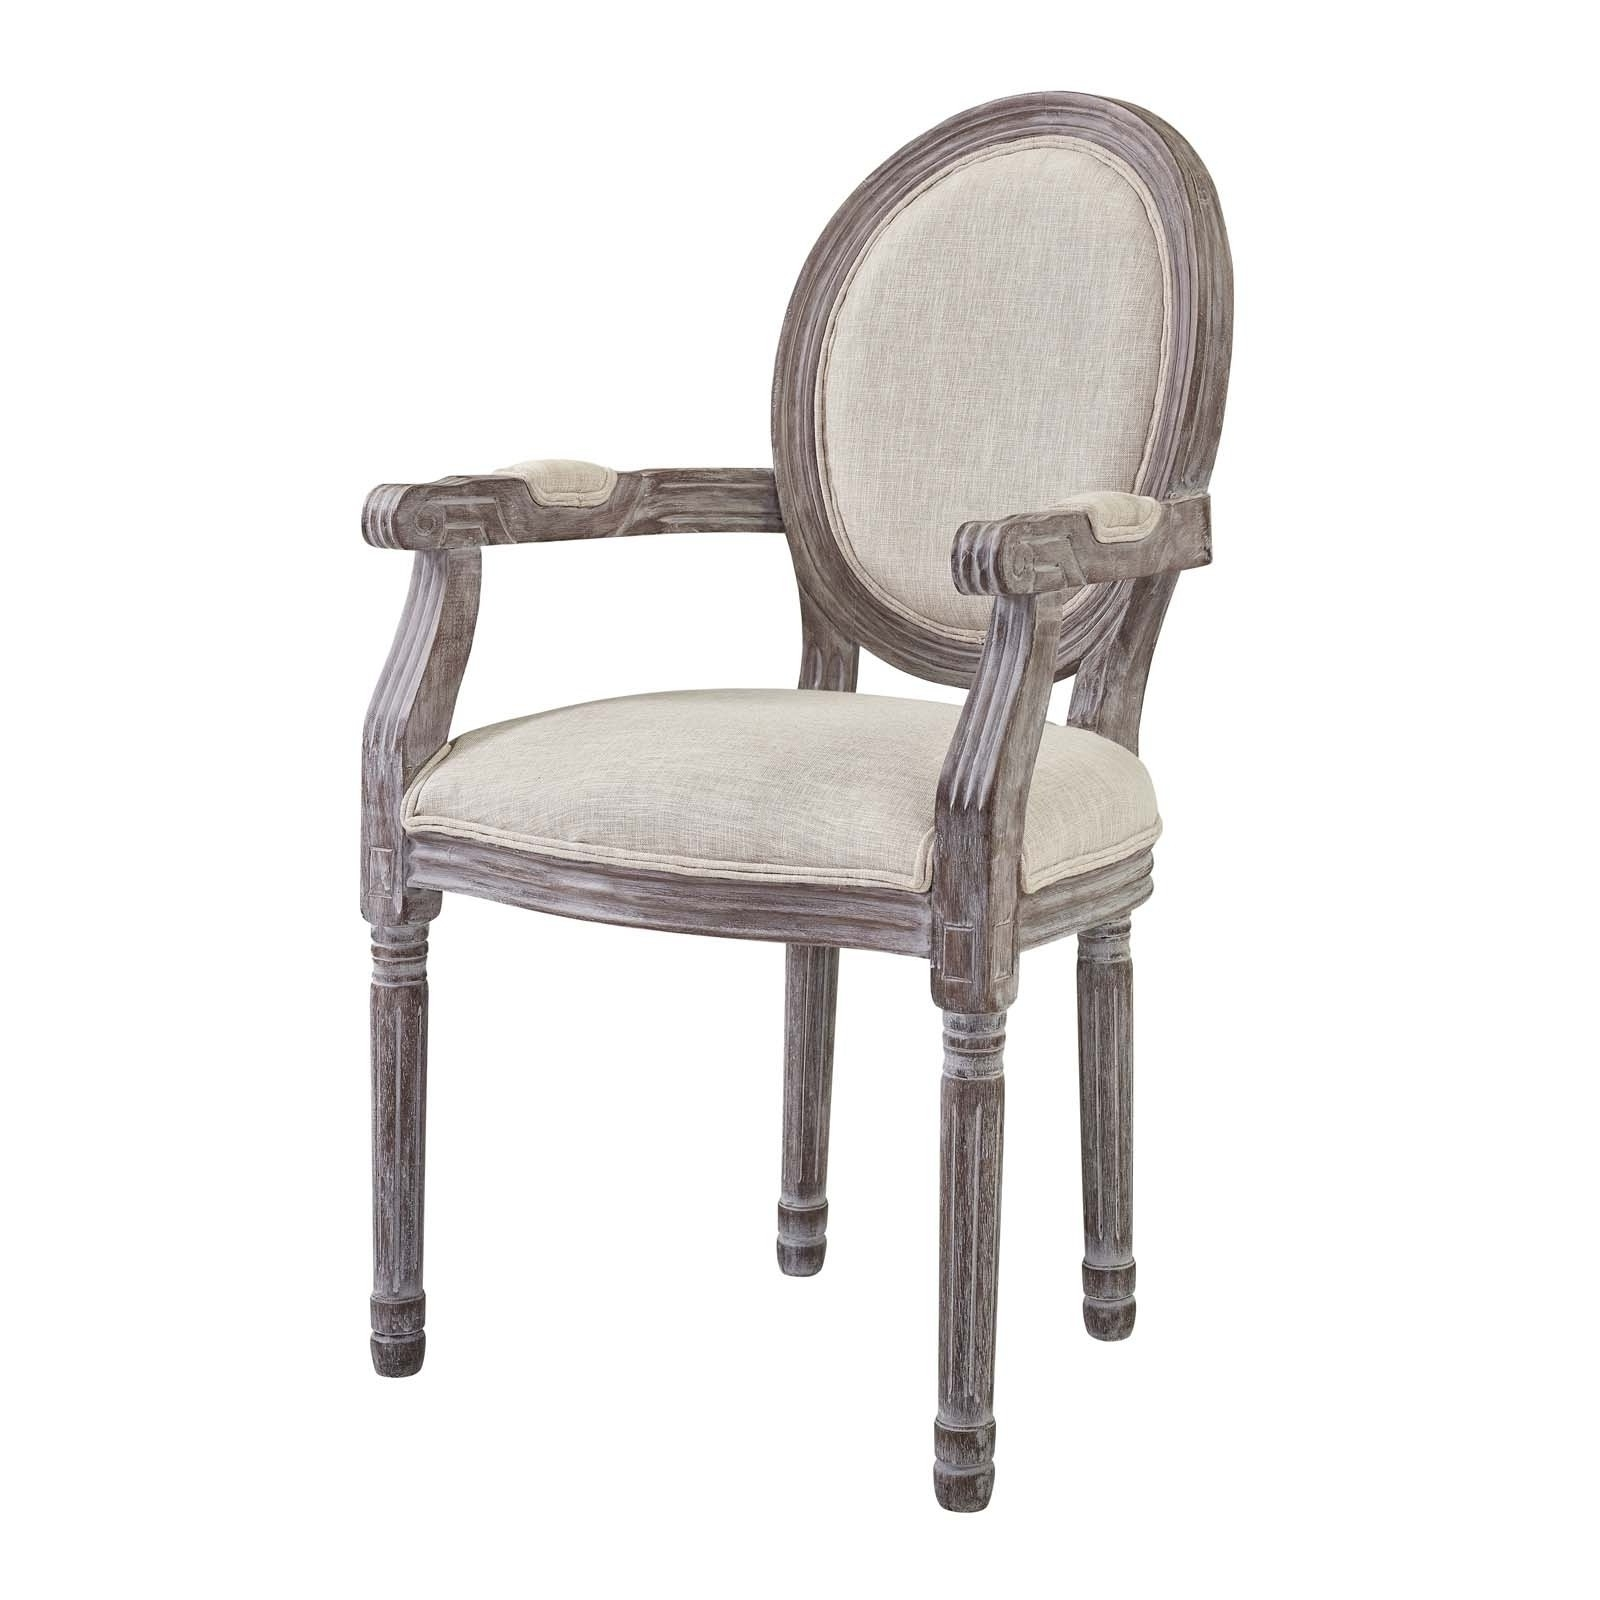 Caira Upholstered Arm Chairs Regarding Preferred Shop Emanate Vintage French Upholstered Fabric Dining Armchair – N/a (View 6 of 20)